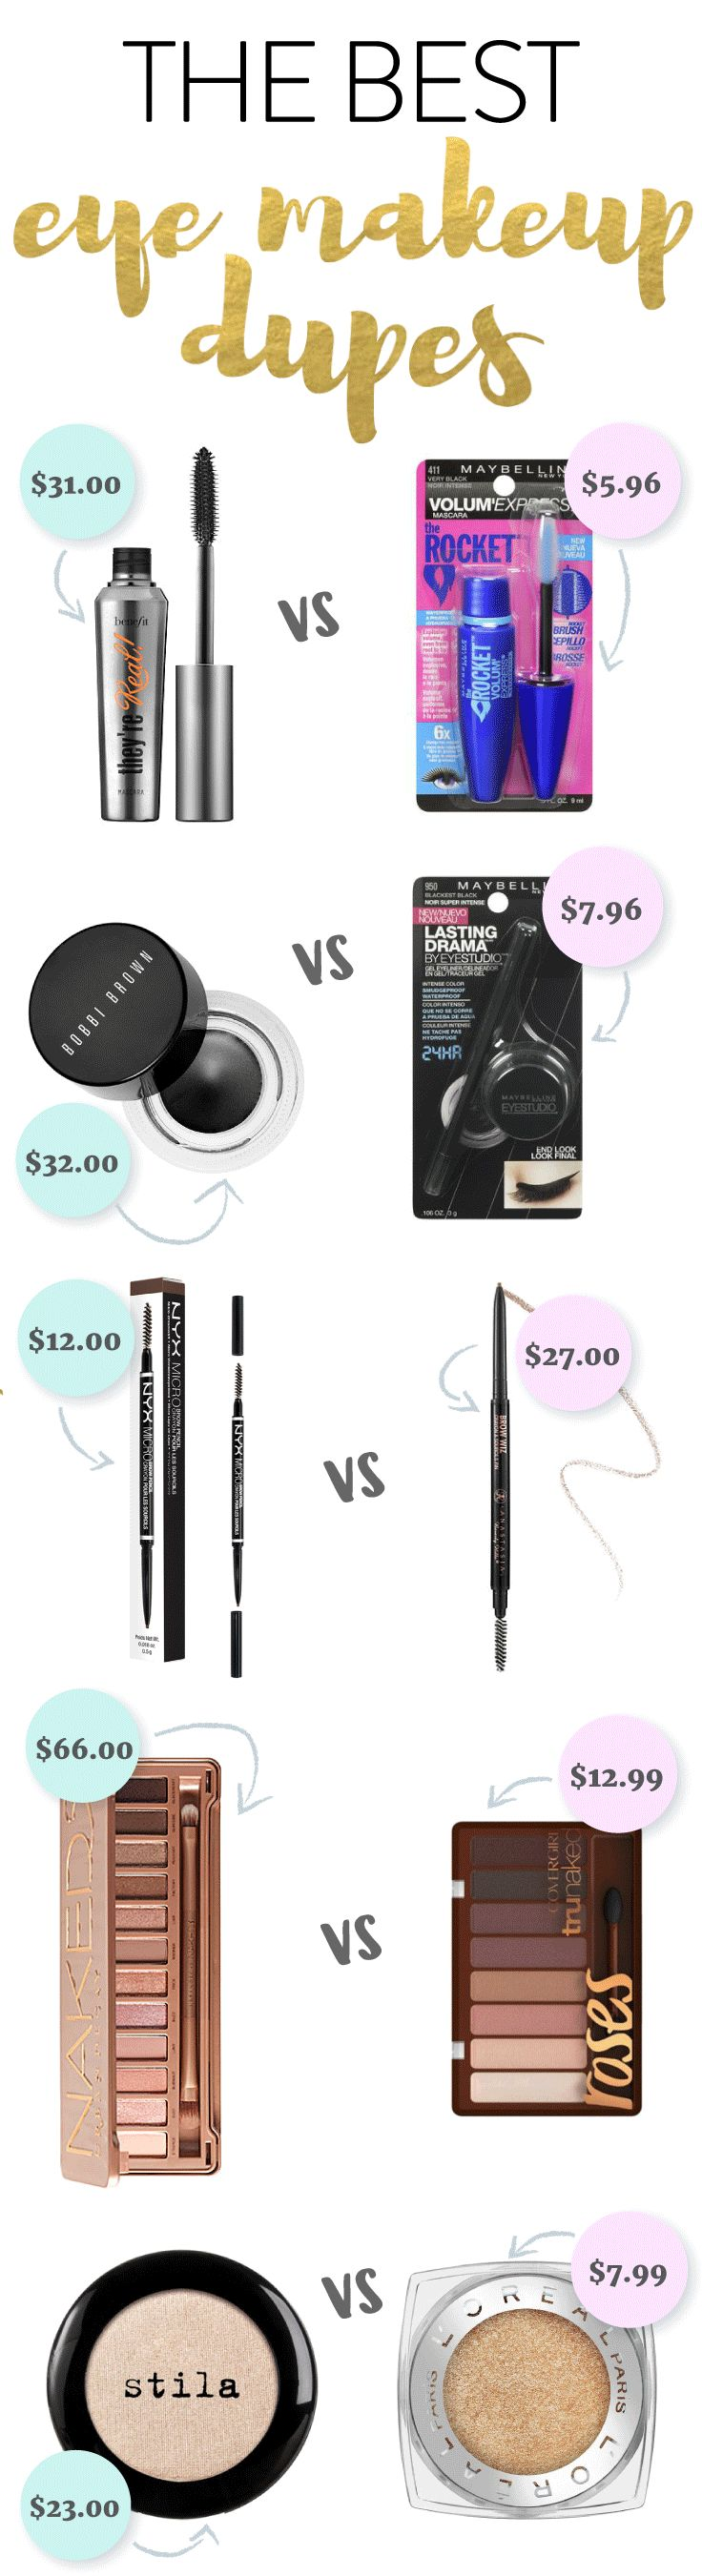 The Best Eye Makeup Dupes Canada 2017 Makeup dupes